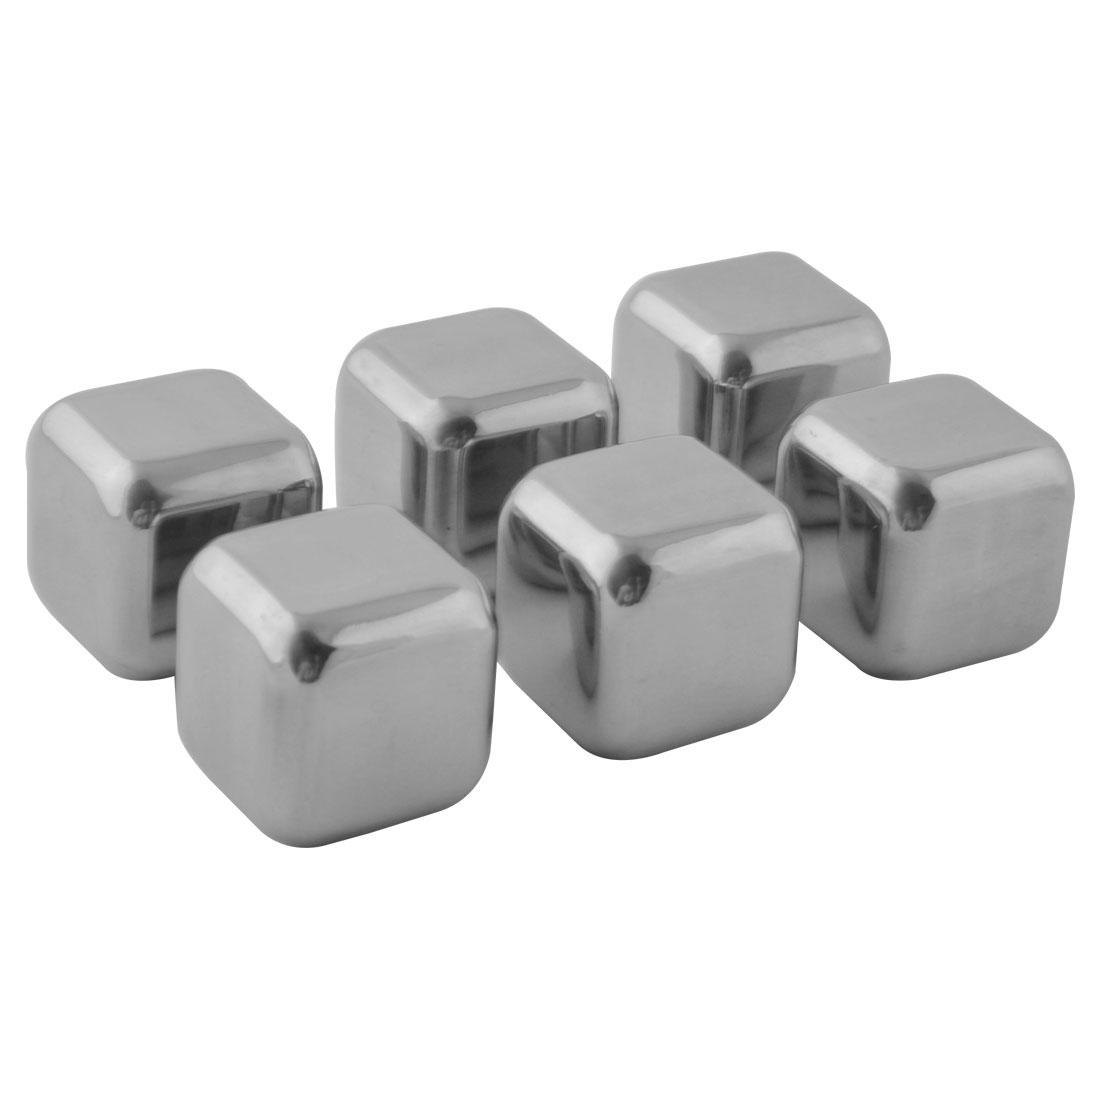 Bar Pub Vodka Beer Stainless Steel Square Shaped Whisky Cooling Stones Ice Cube 6 Pcs